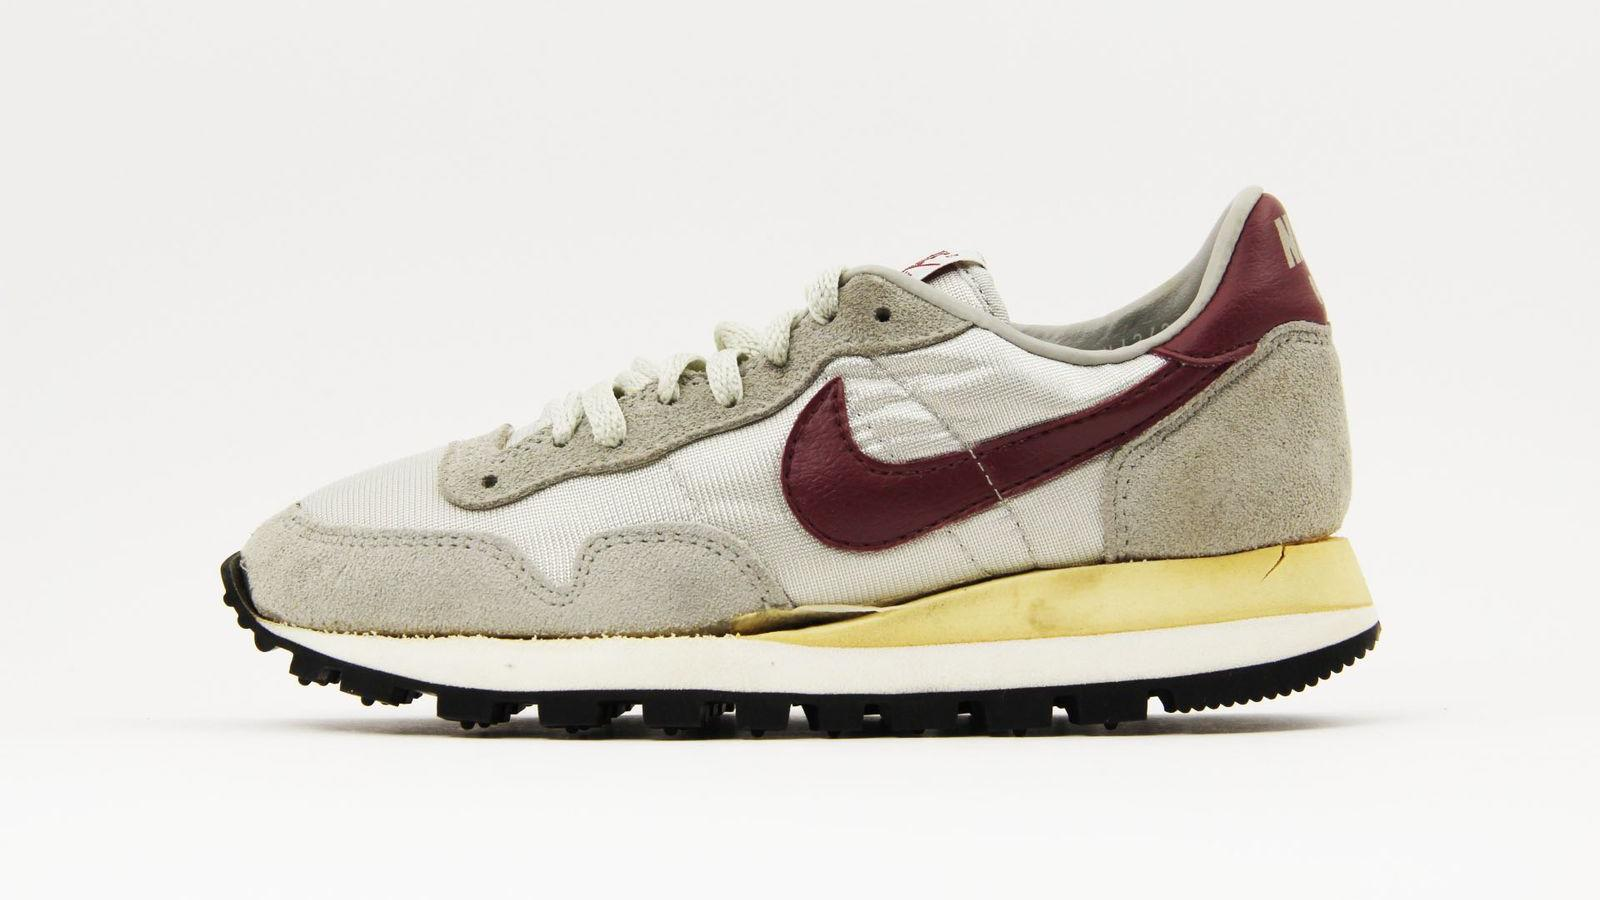 a65b0e6cac5433 10 Things You Didn t Know About the Nike Pegasus - Nike News